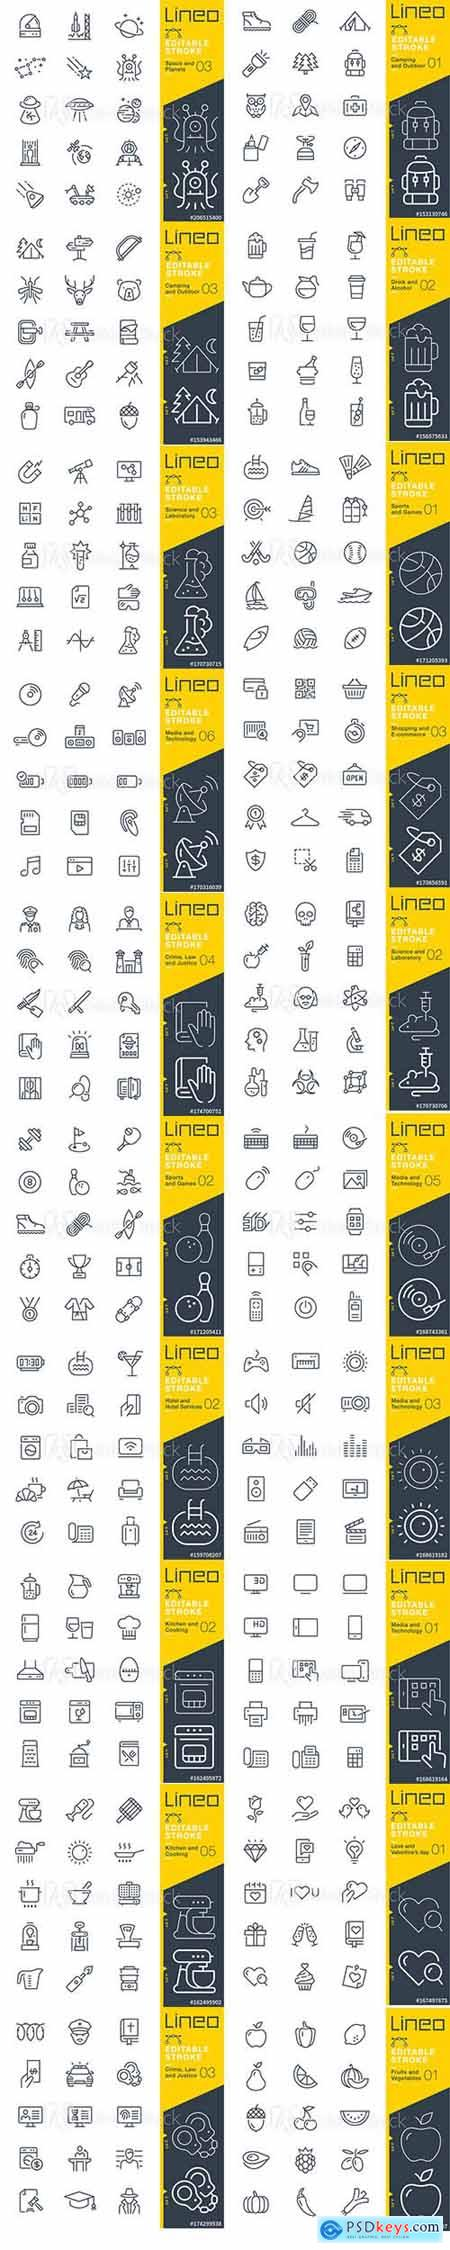 Vector Set - Outline Icons Pack Lineo Vol 4